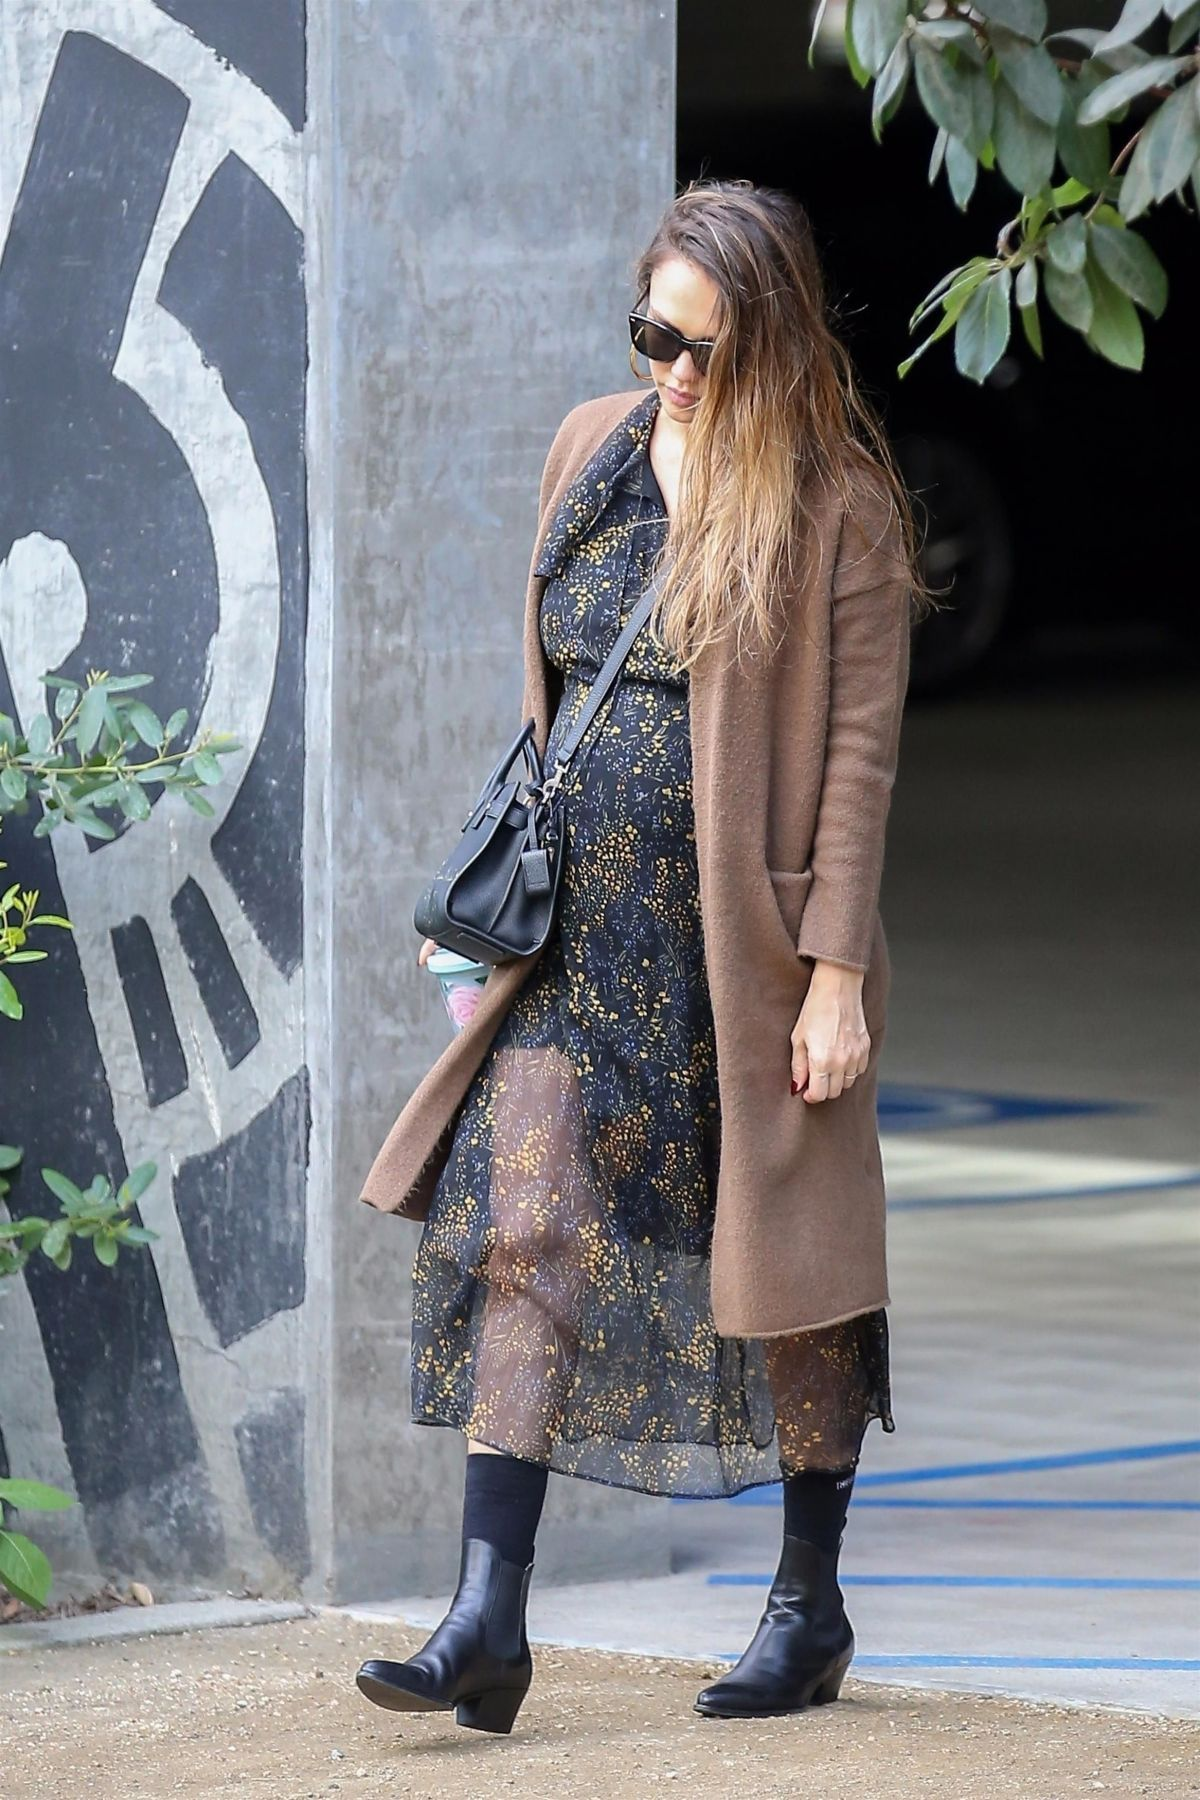 http://www.hawtcelebs.com/wp-content/uploads/2017/11/pregnant-jessica-alba-arrives-at-honest-company-in-los-angeles-11-17-2017-2.jpg